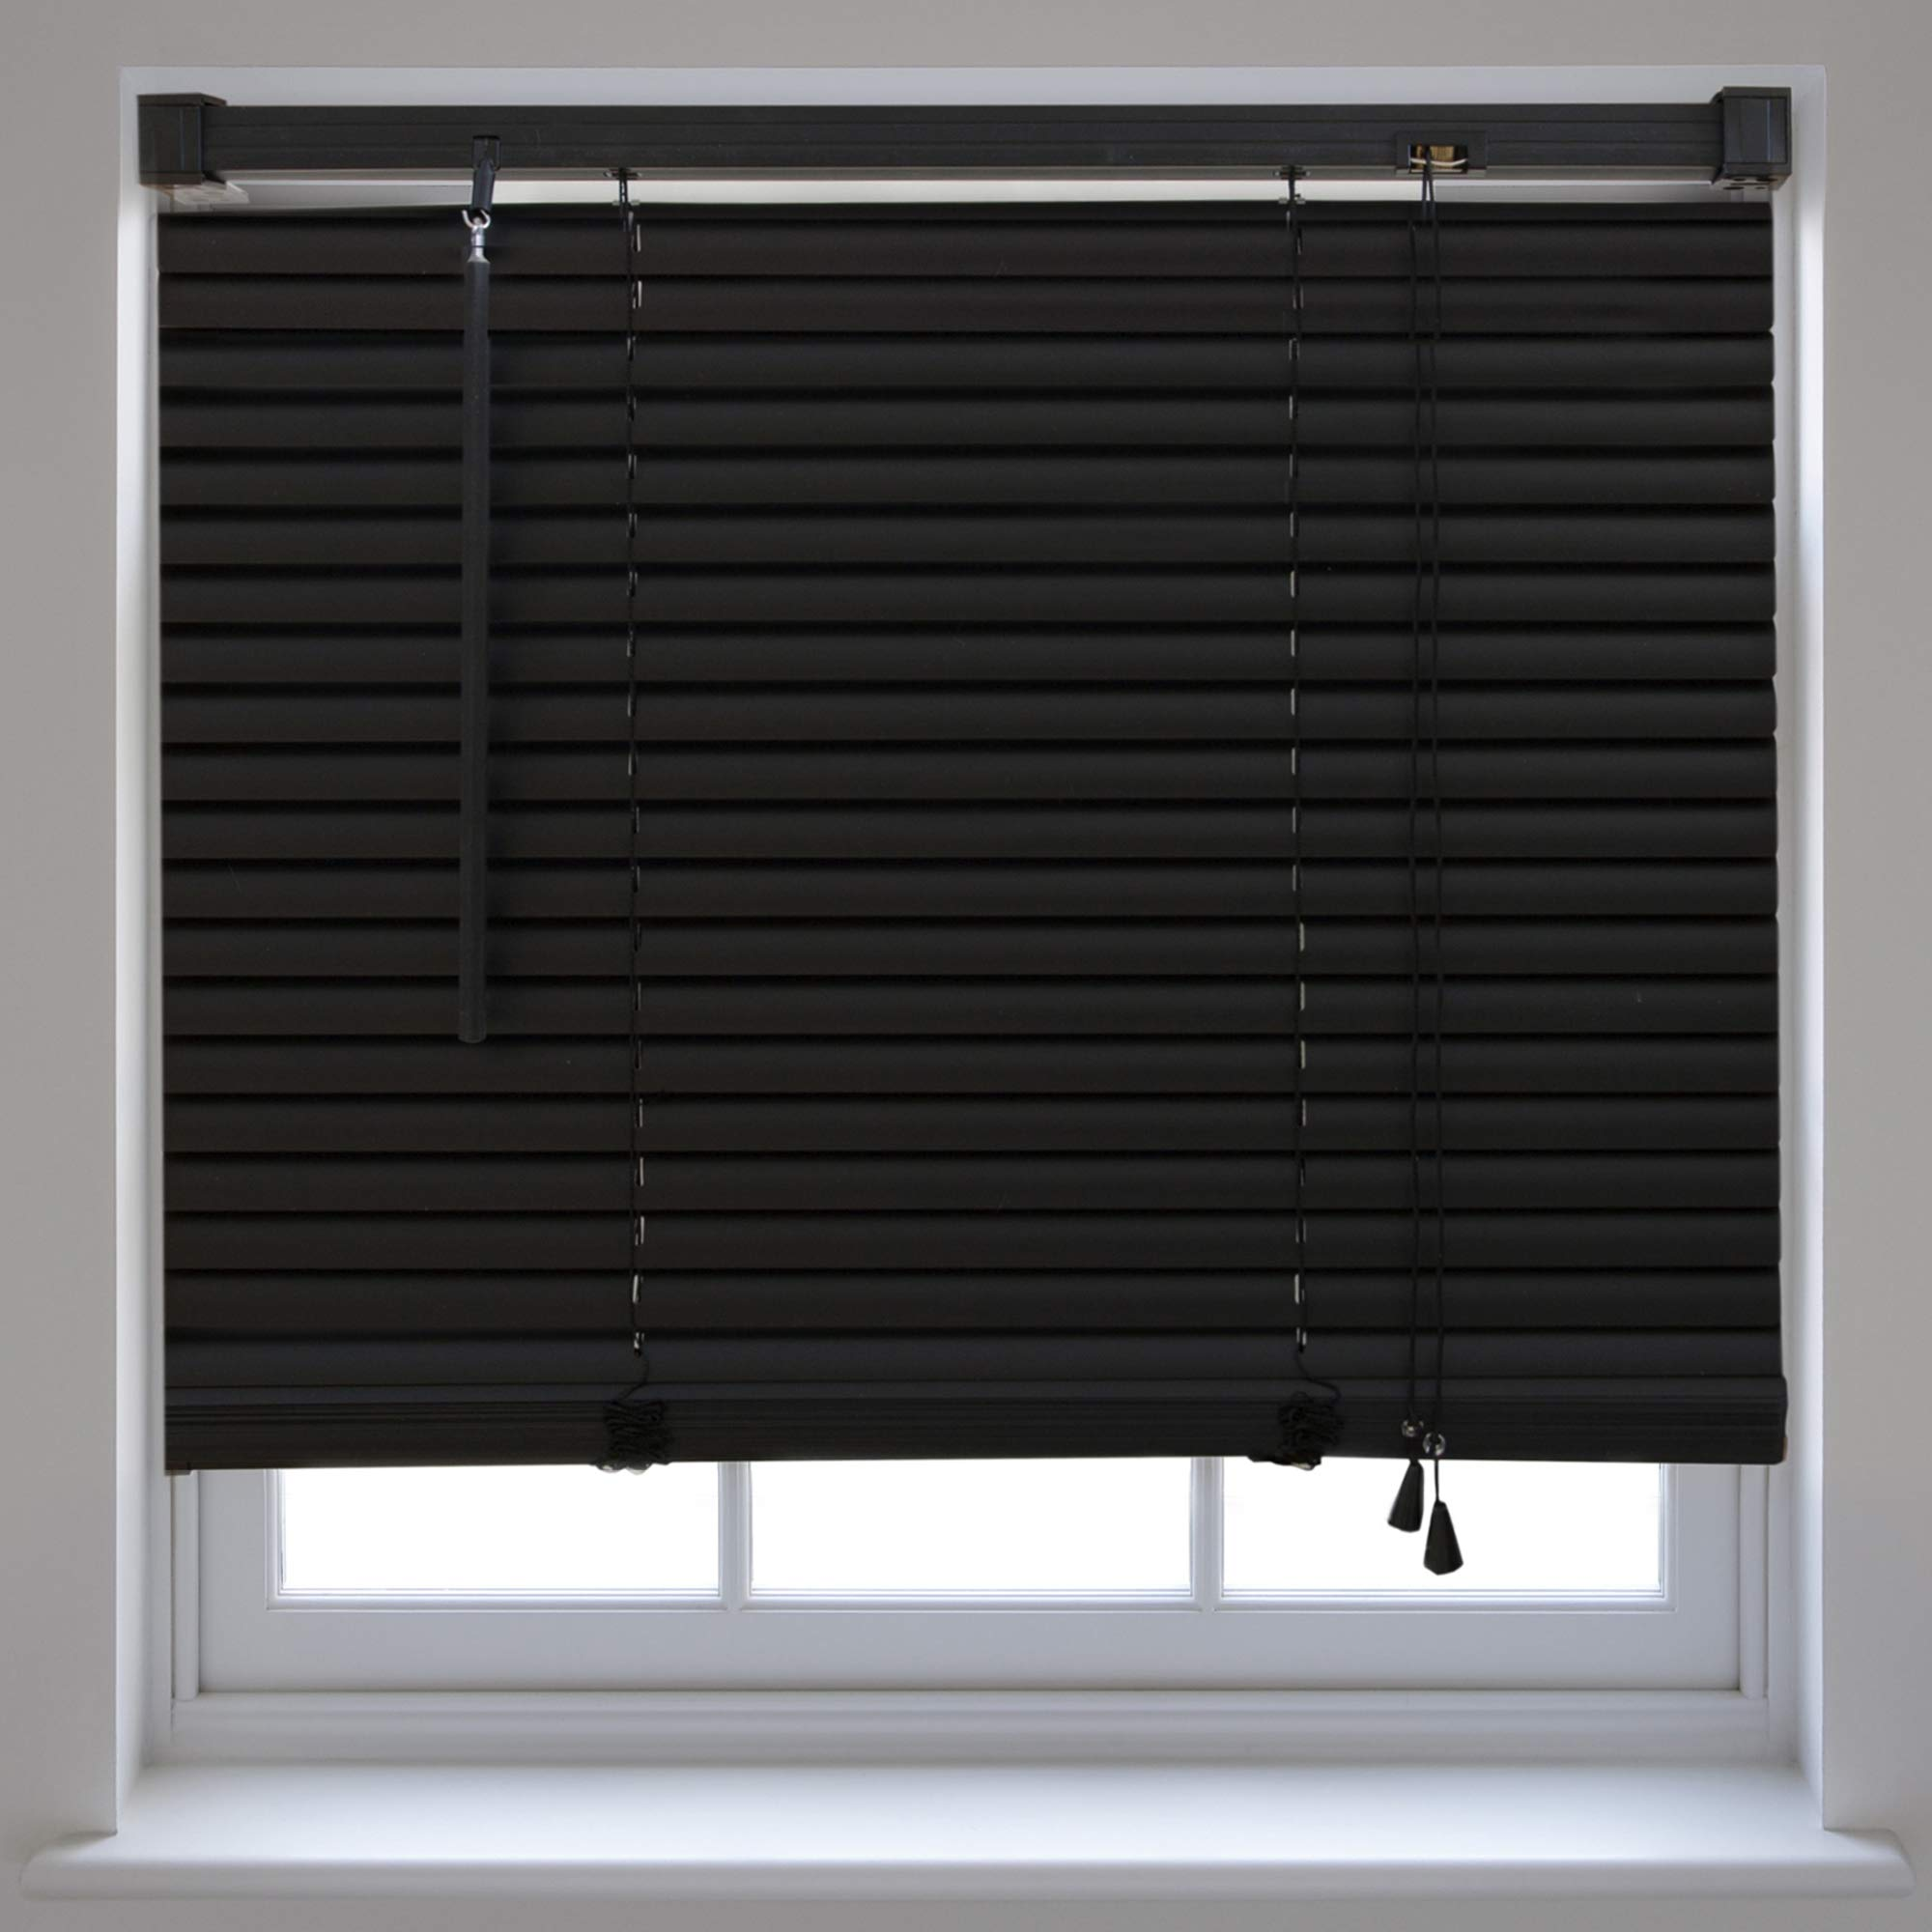 office window blinds. PVC Venetian Window Blinds Trimmable Home Office Blind New - Black 105cm X 210cm